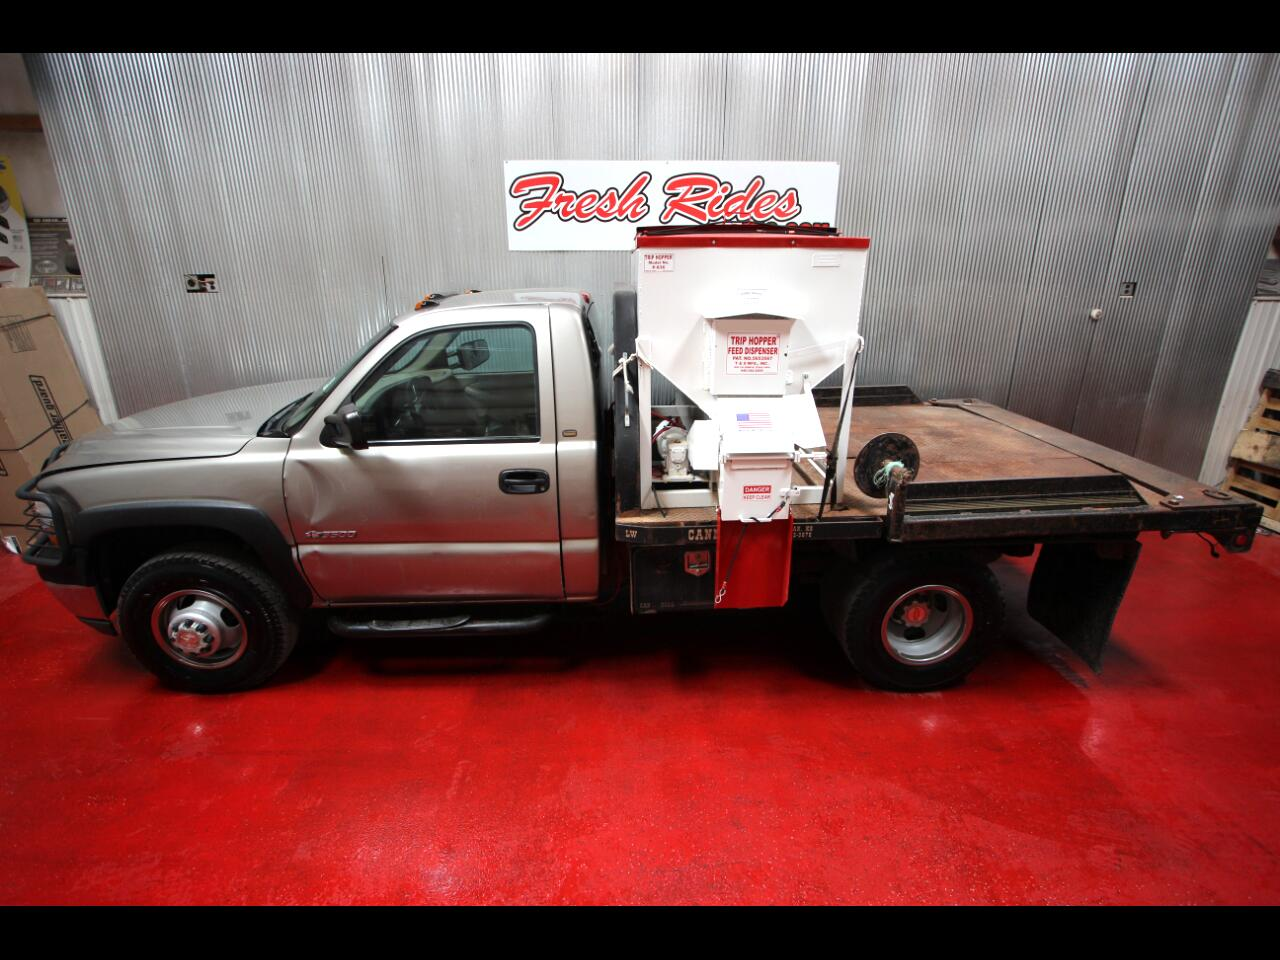 2001 Chevrolet Silverado 3500 Chassis and Cab